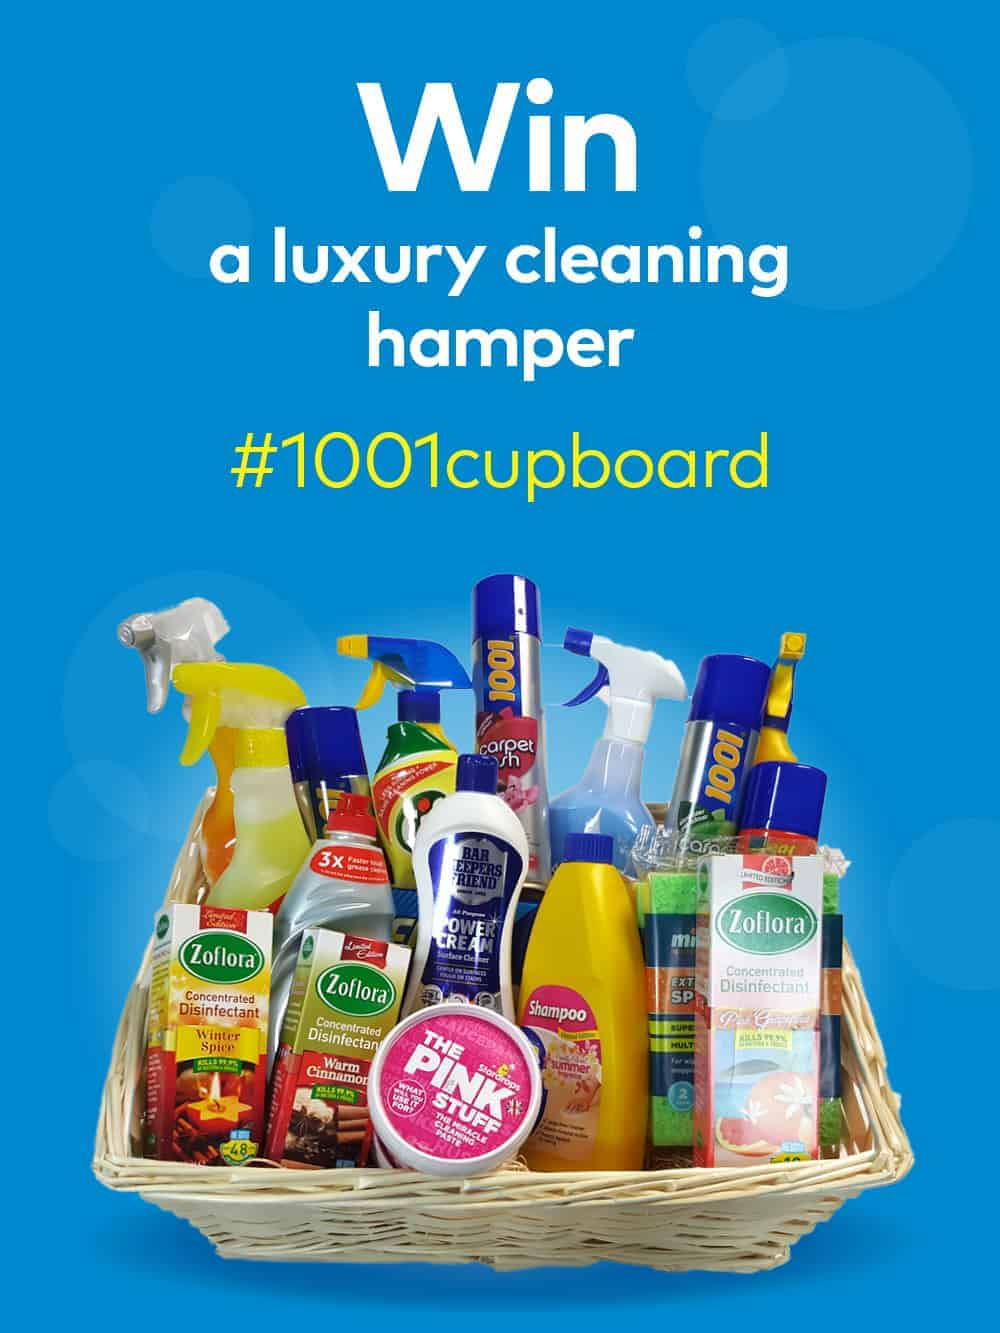 Win a luxury hamper containing carpet cleaning products and loads more